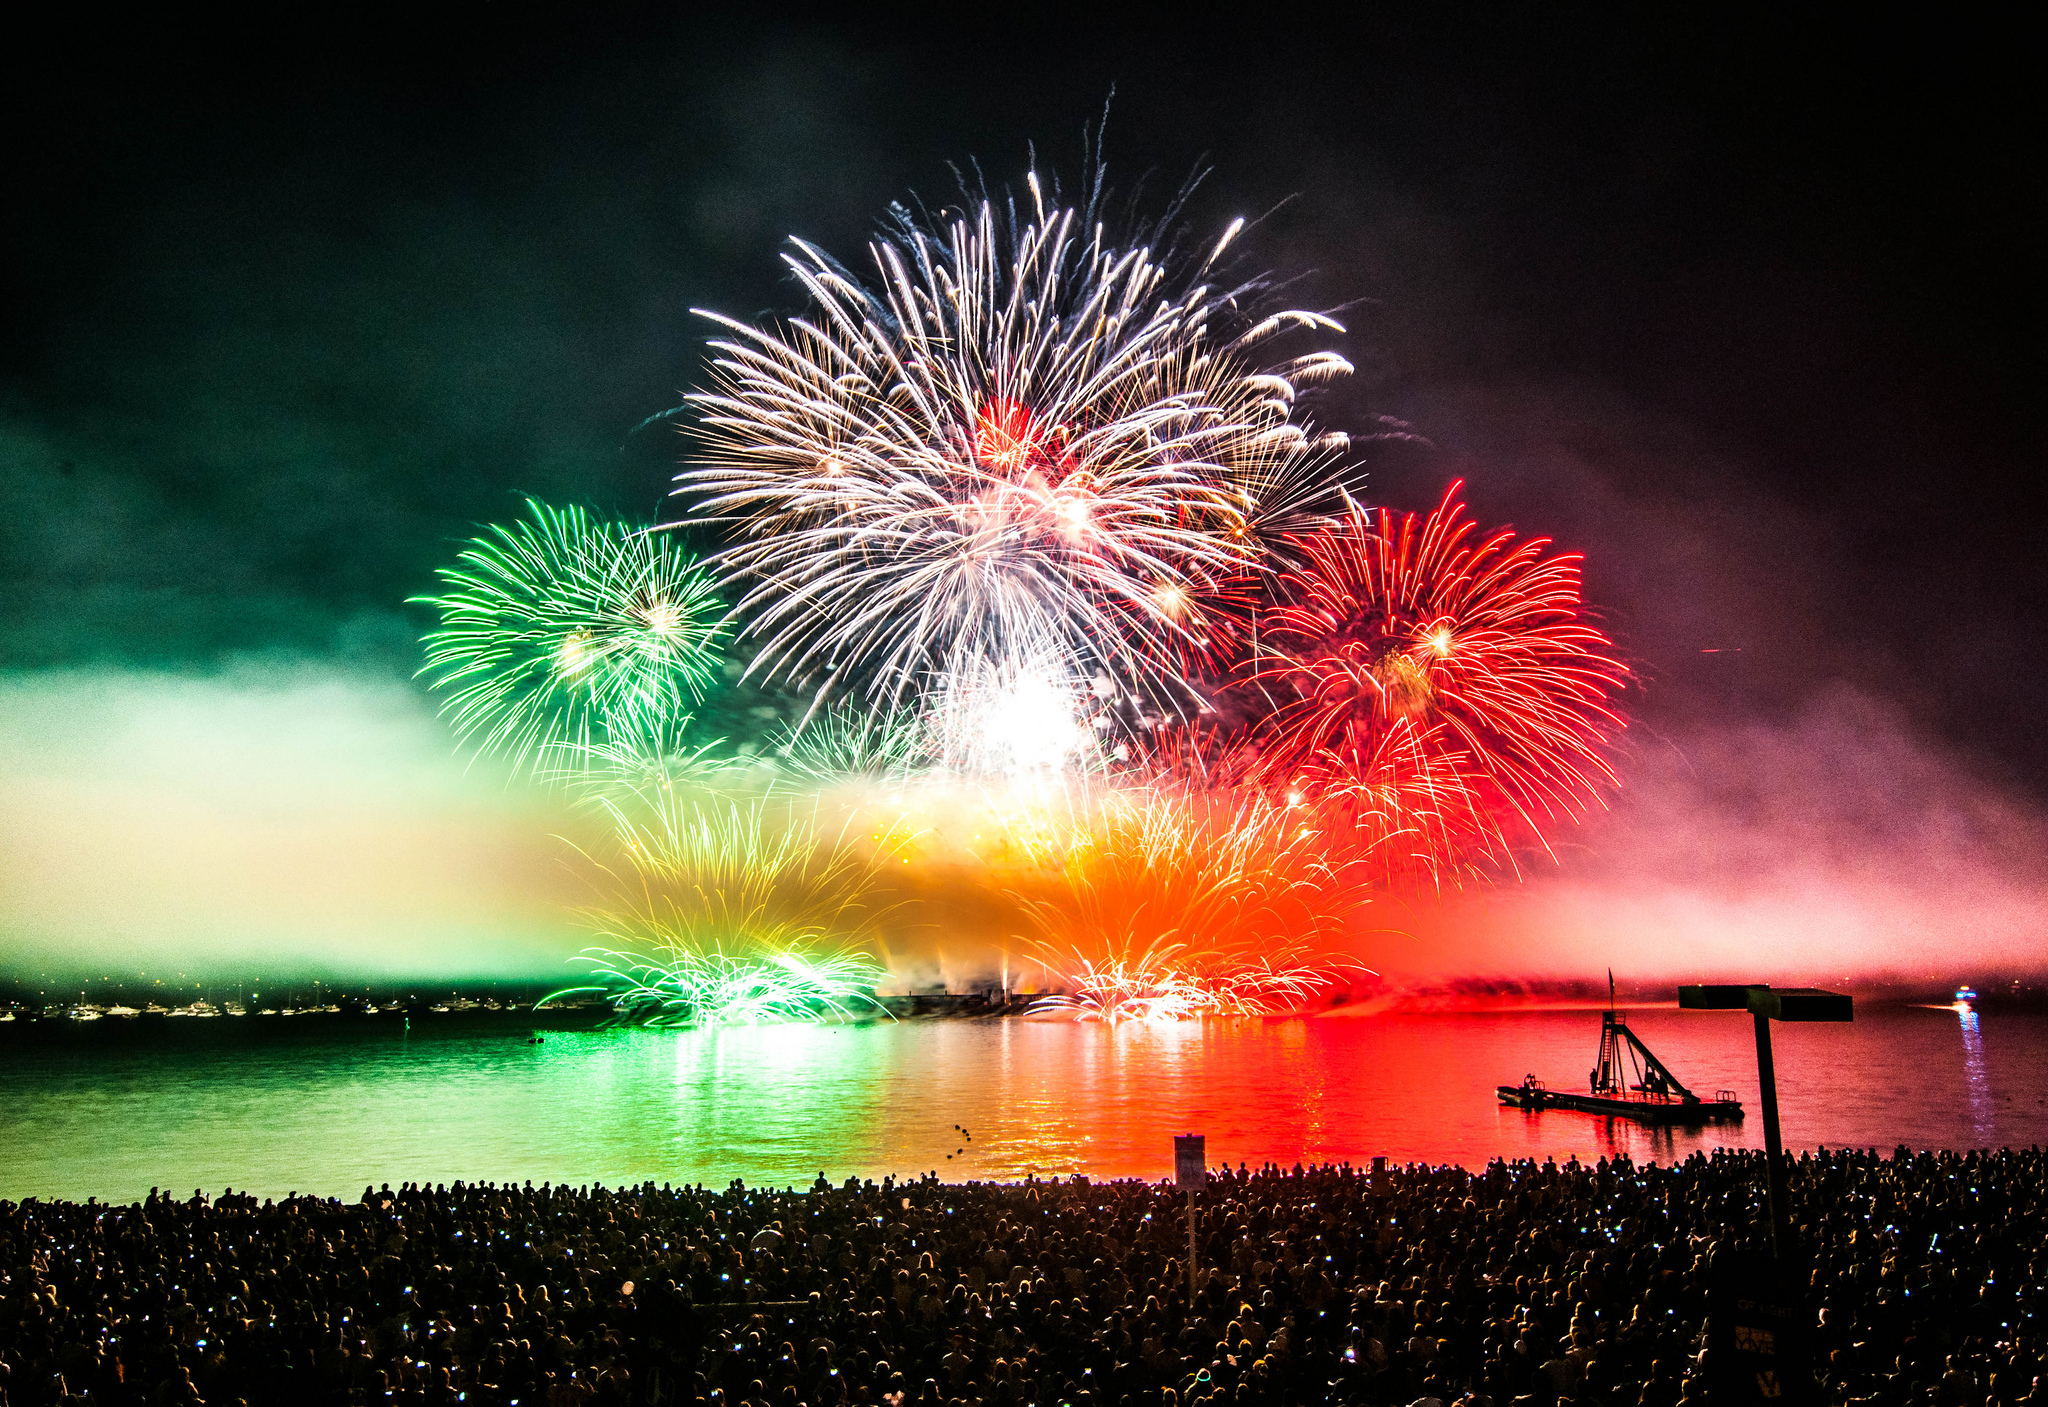 Serve Italian sweets for your next special occasion. Fireworks, Celebration of Lights-Italy by colink.